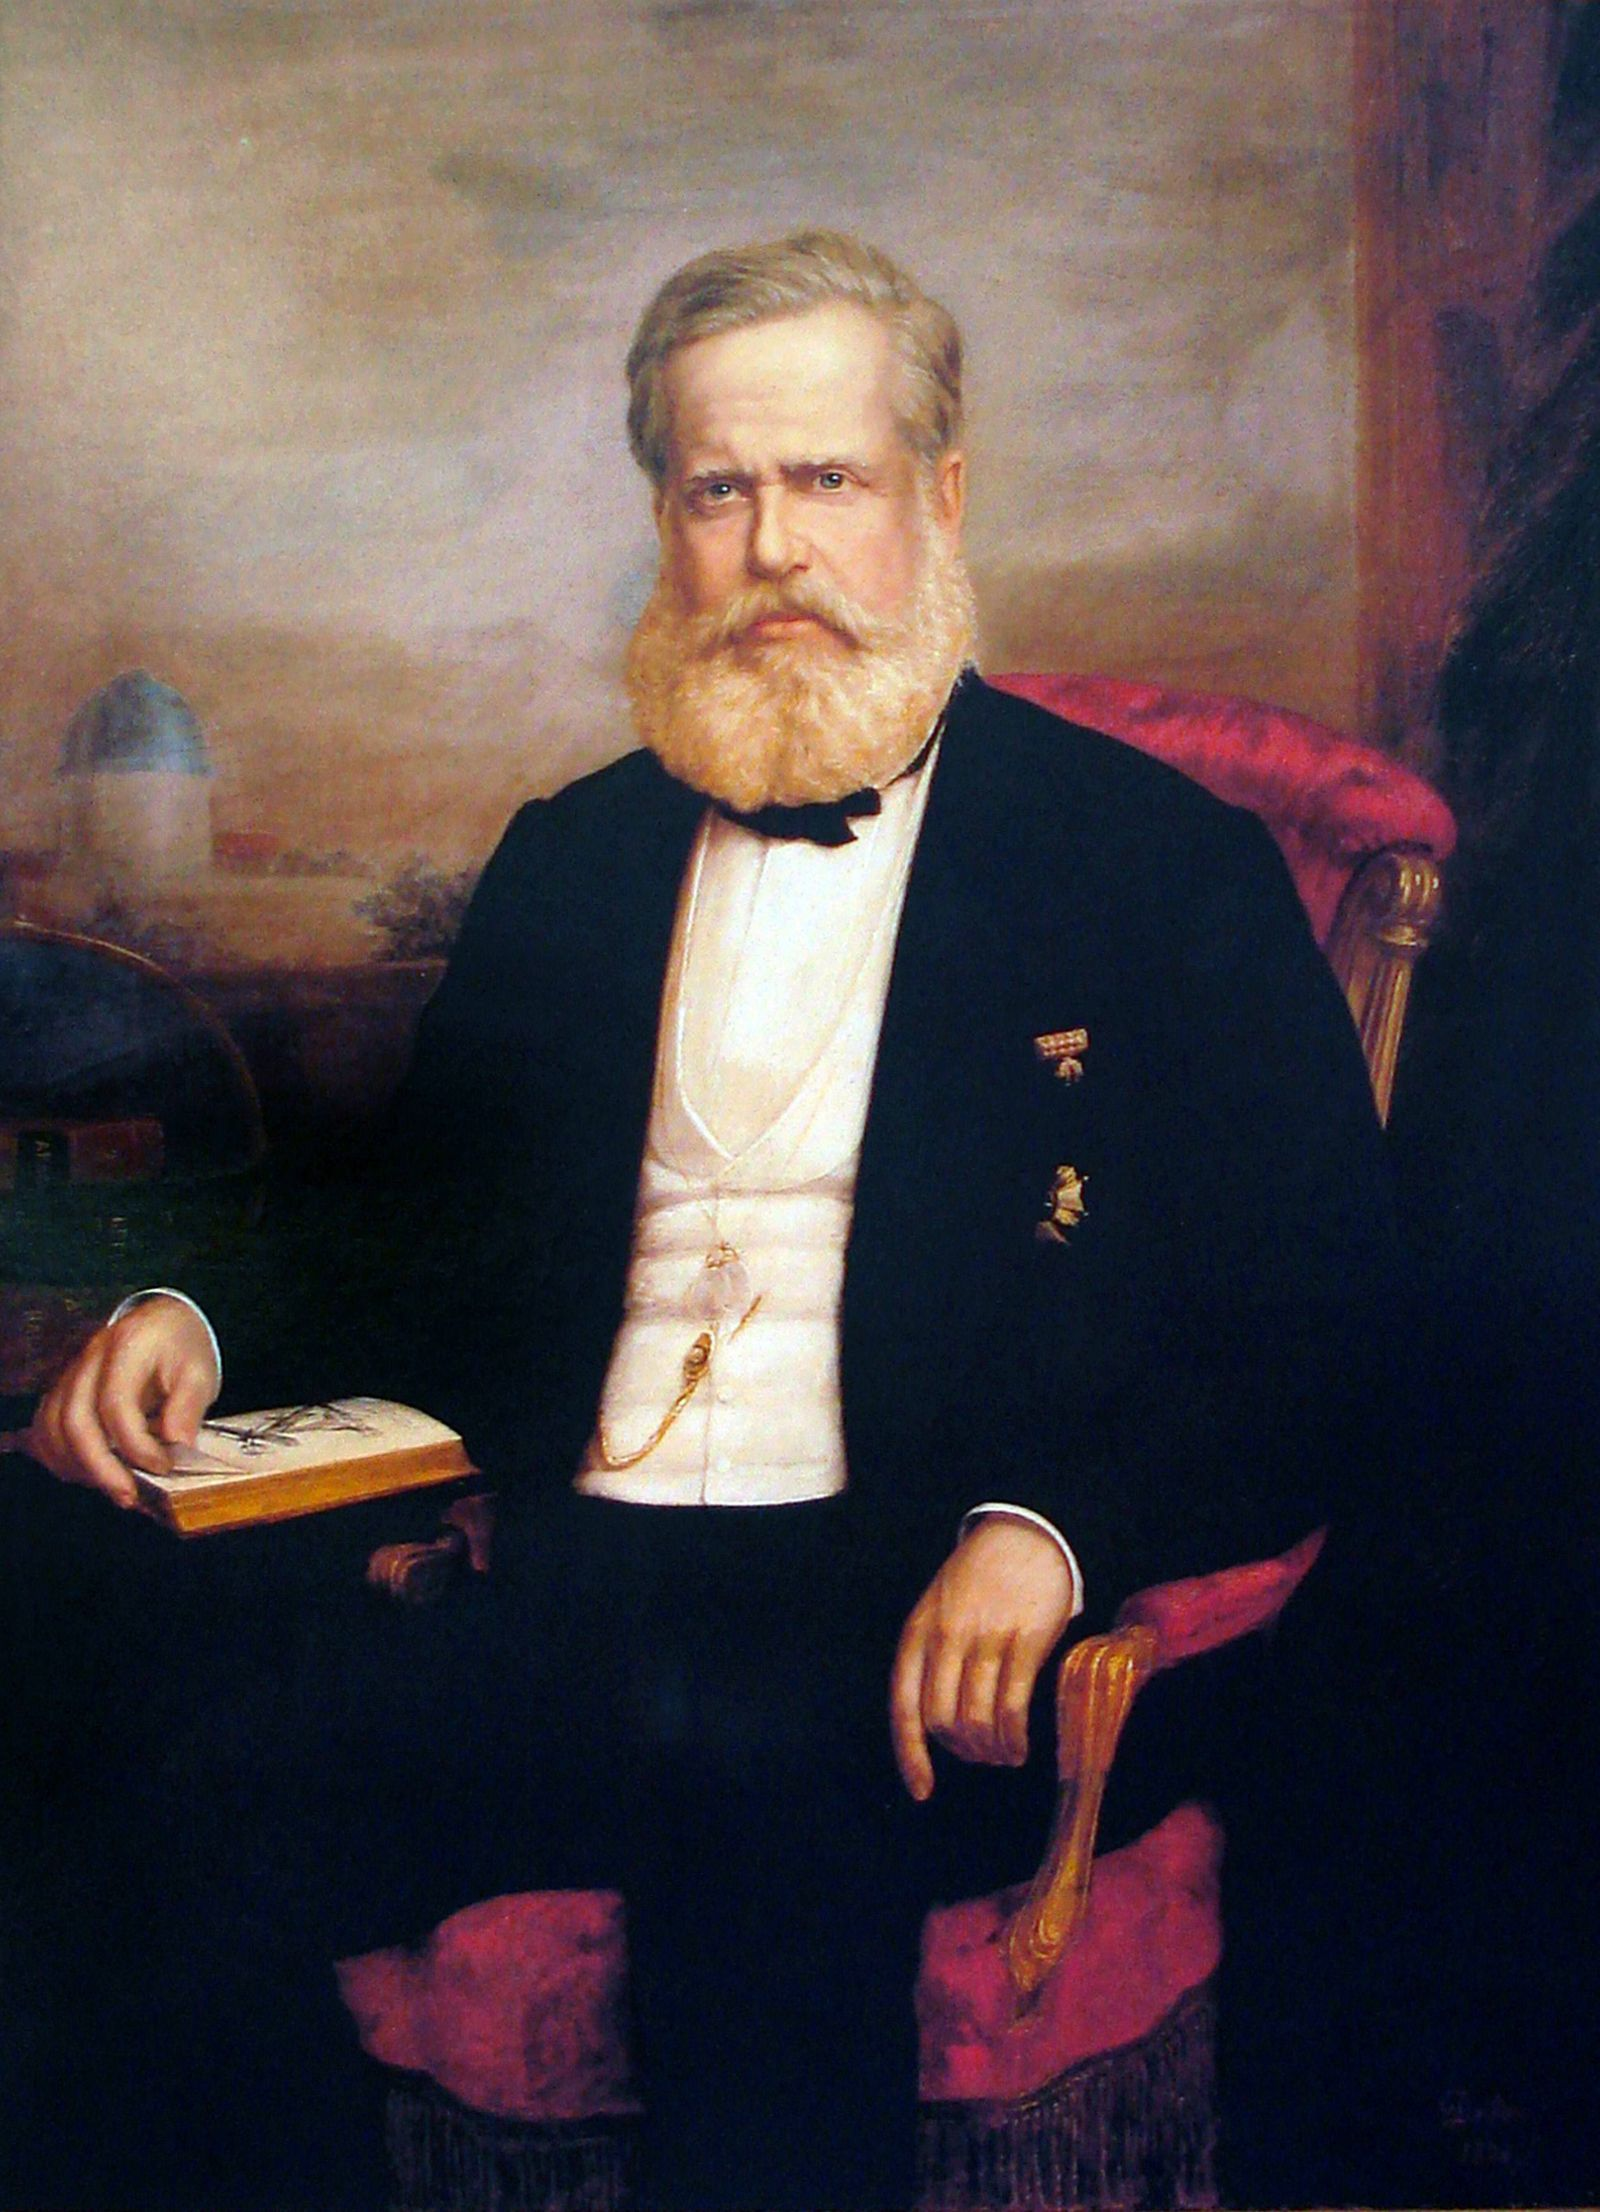 Pedro II of Brazil Dom Pedro II 1825 – 5 December 1891 the Magnanimous was the second and last